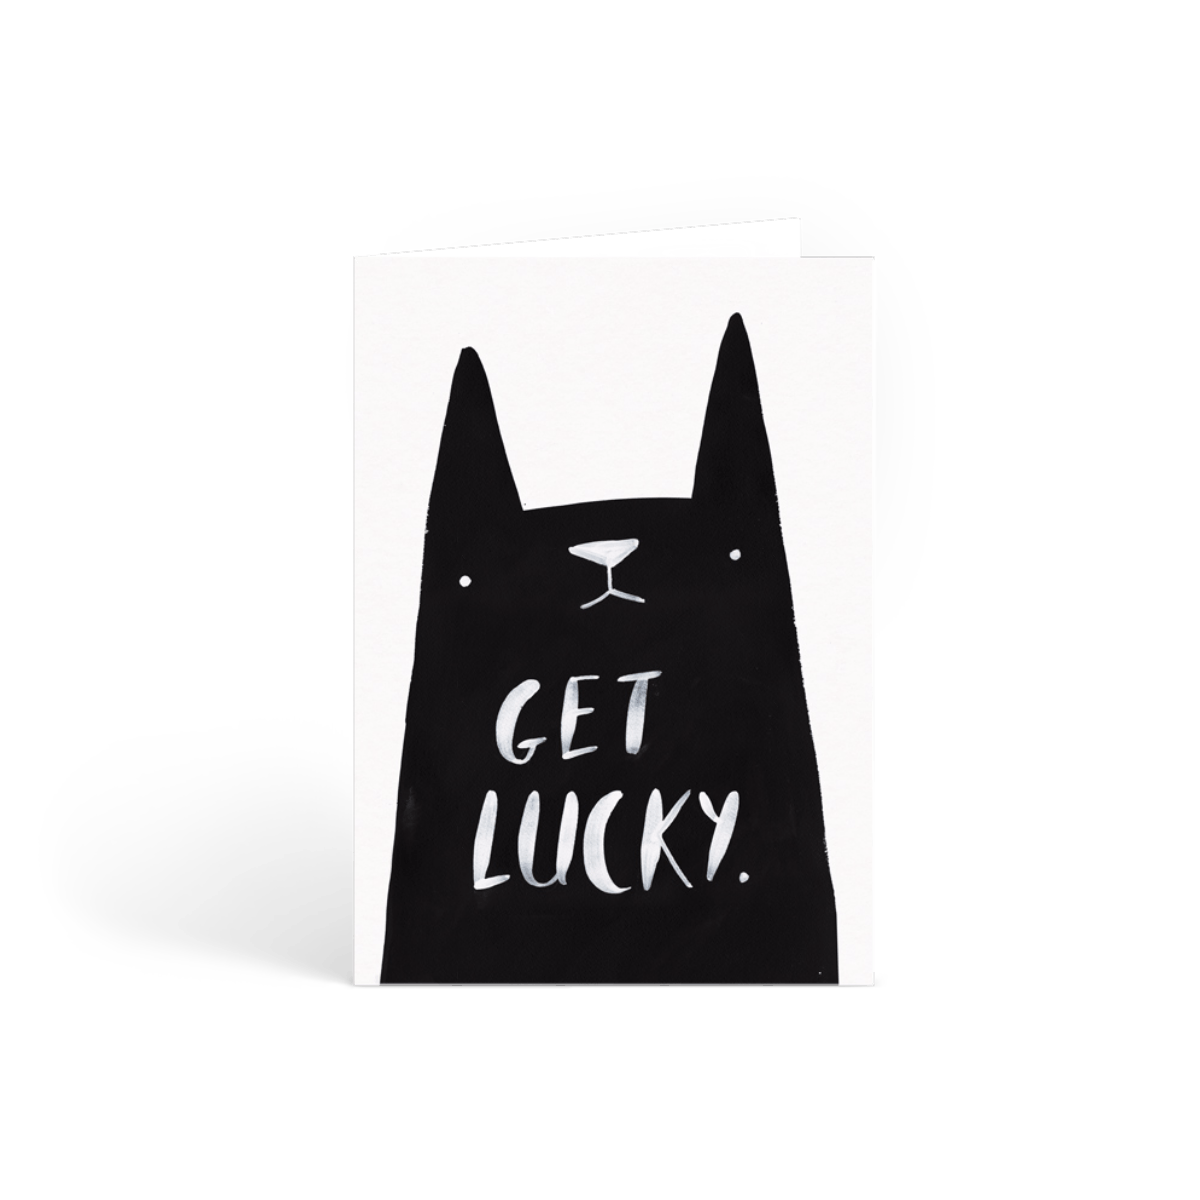 Https%3a%2f%2fwww.papier.com%2fproduct image%2f23931%2f2%2fget lucky black cat 5987 front 1497630906.png?ixlib=rb 1.1